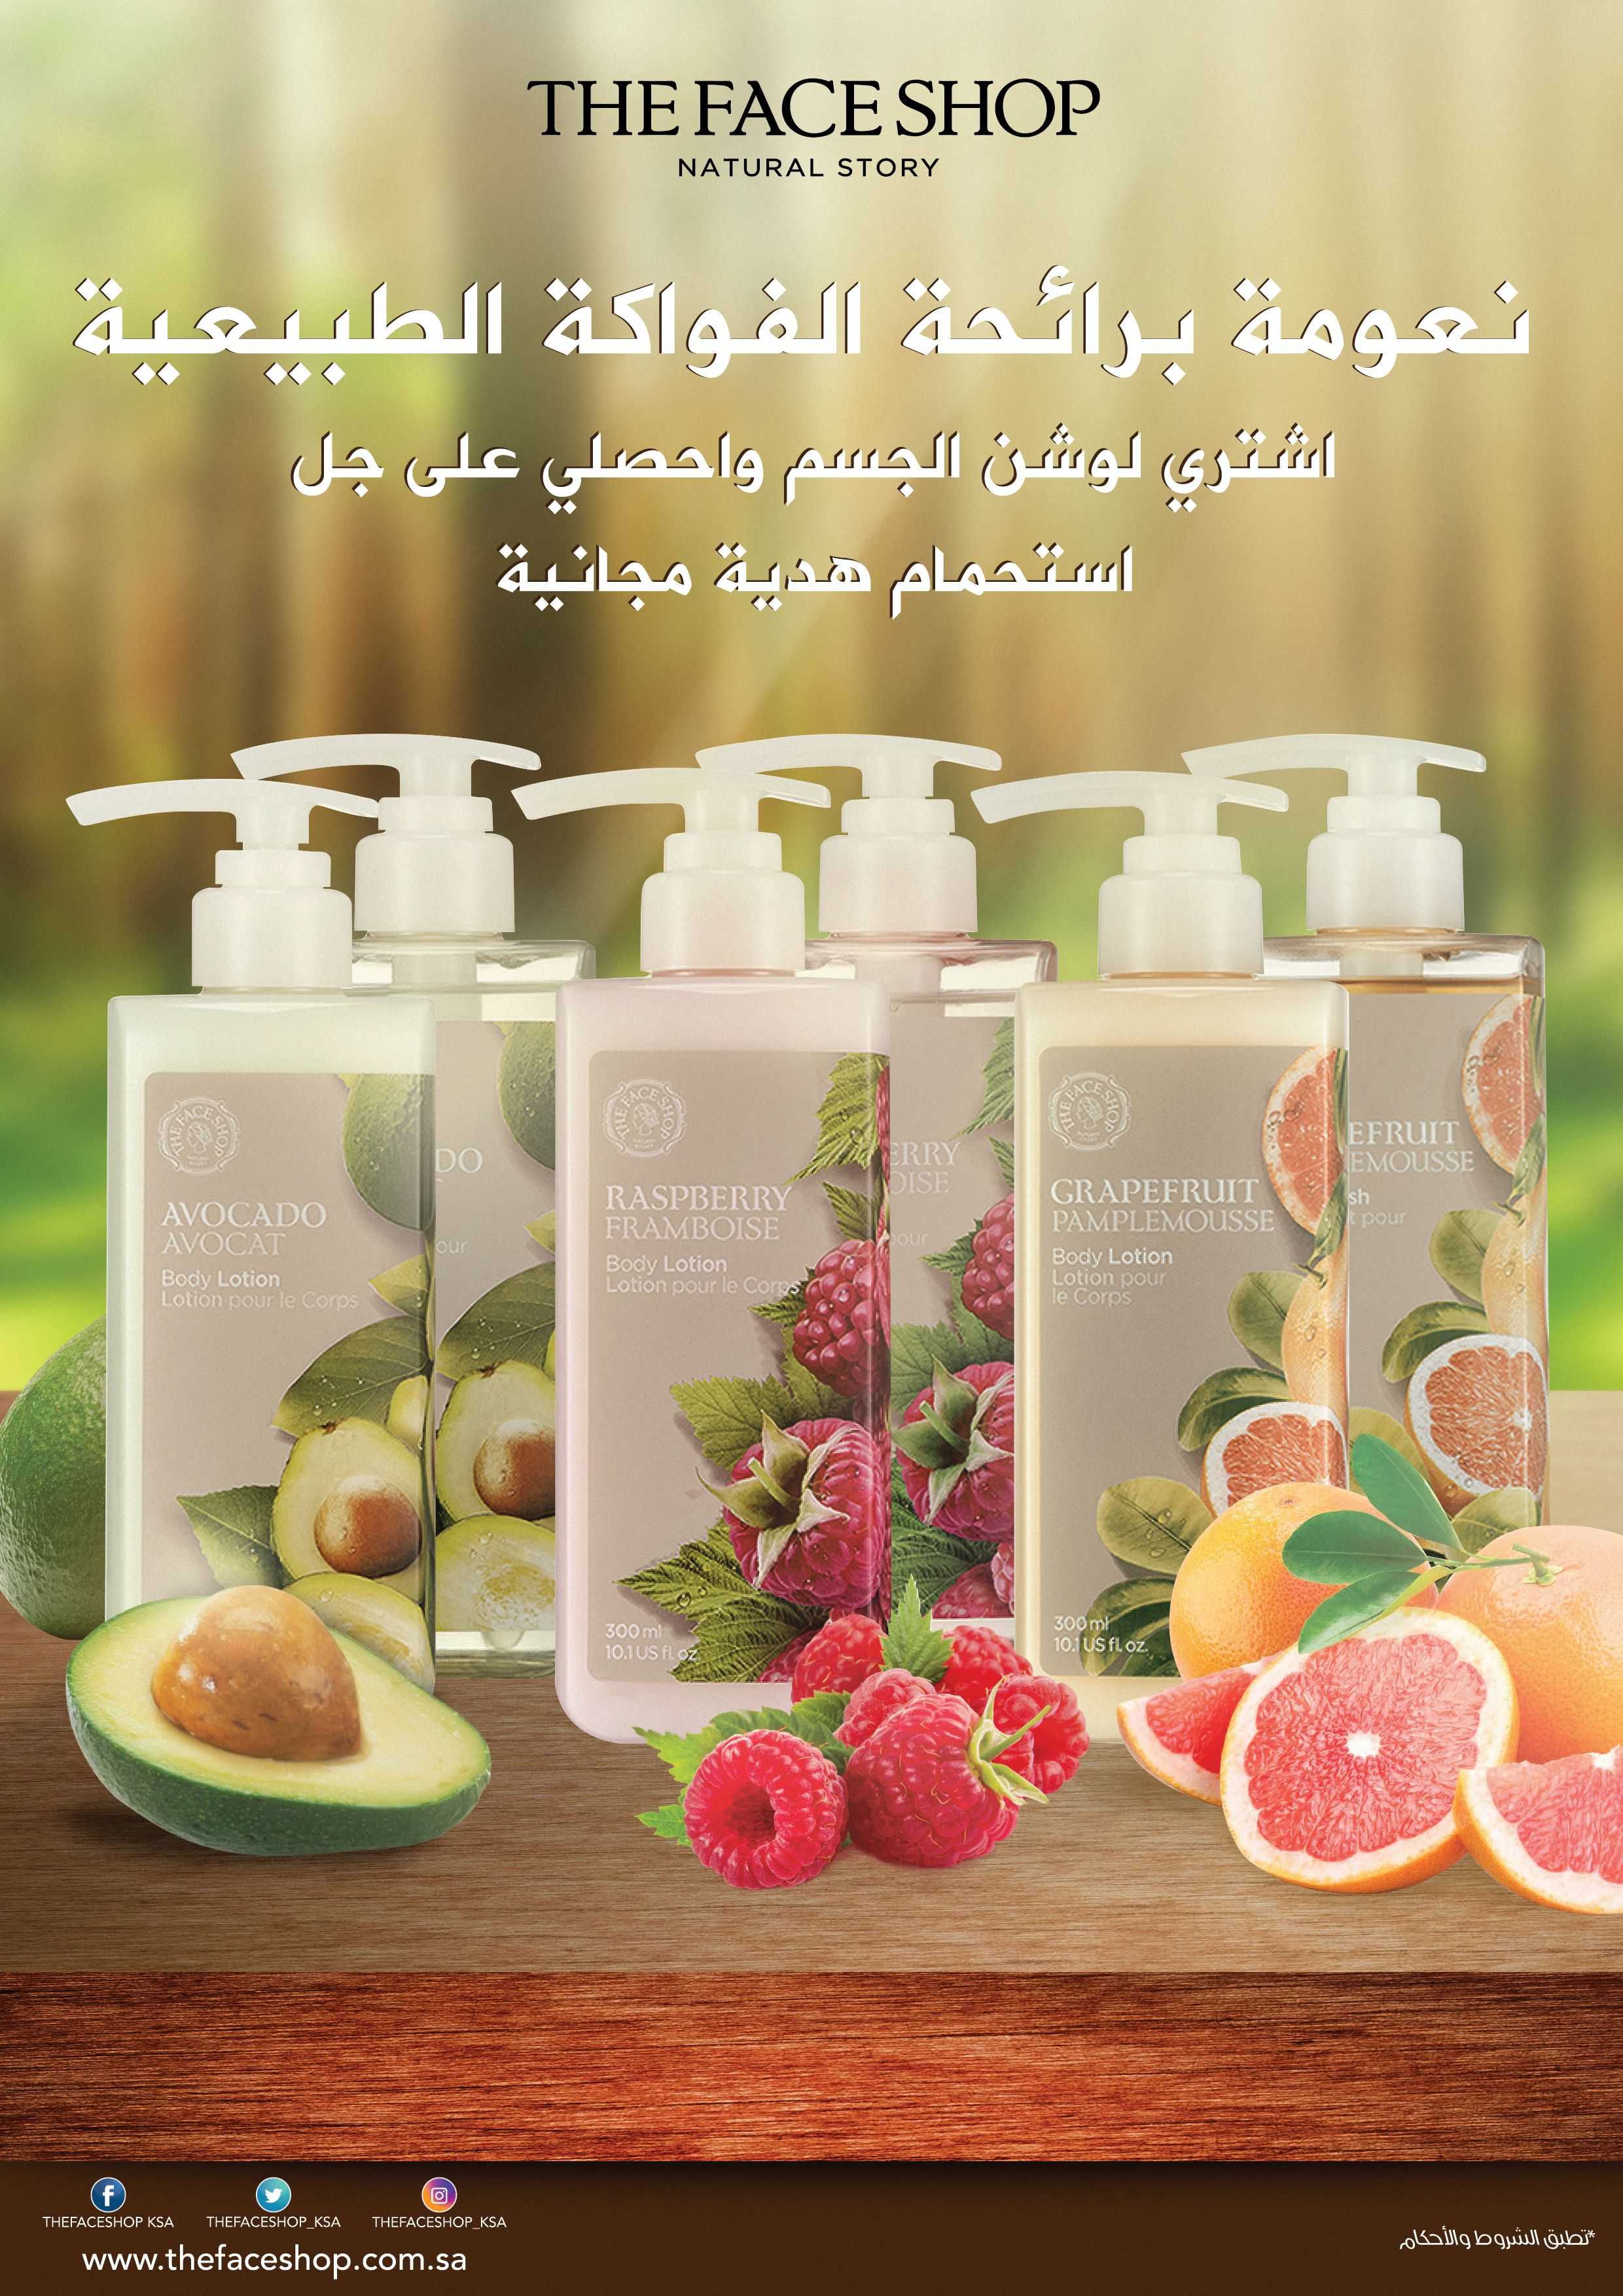 Pin By Mhon Dey On Graphic Designs Shop Natural The Face Shop Body Lotion